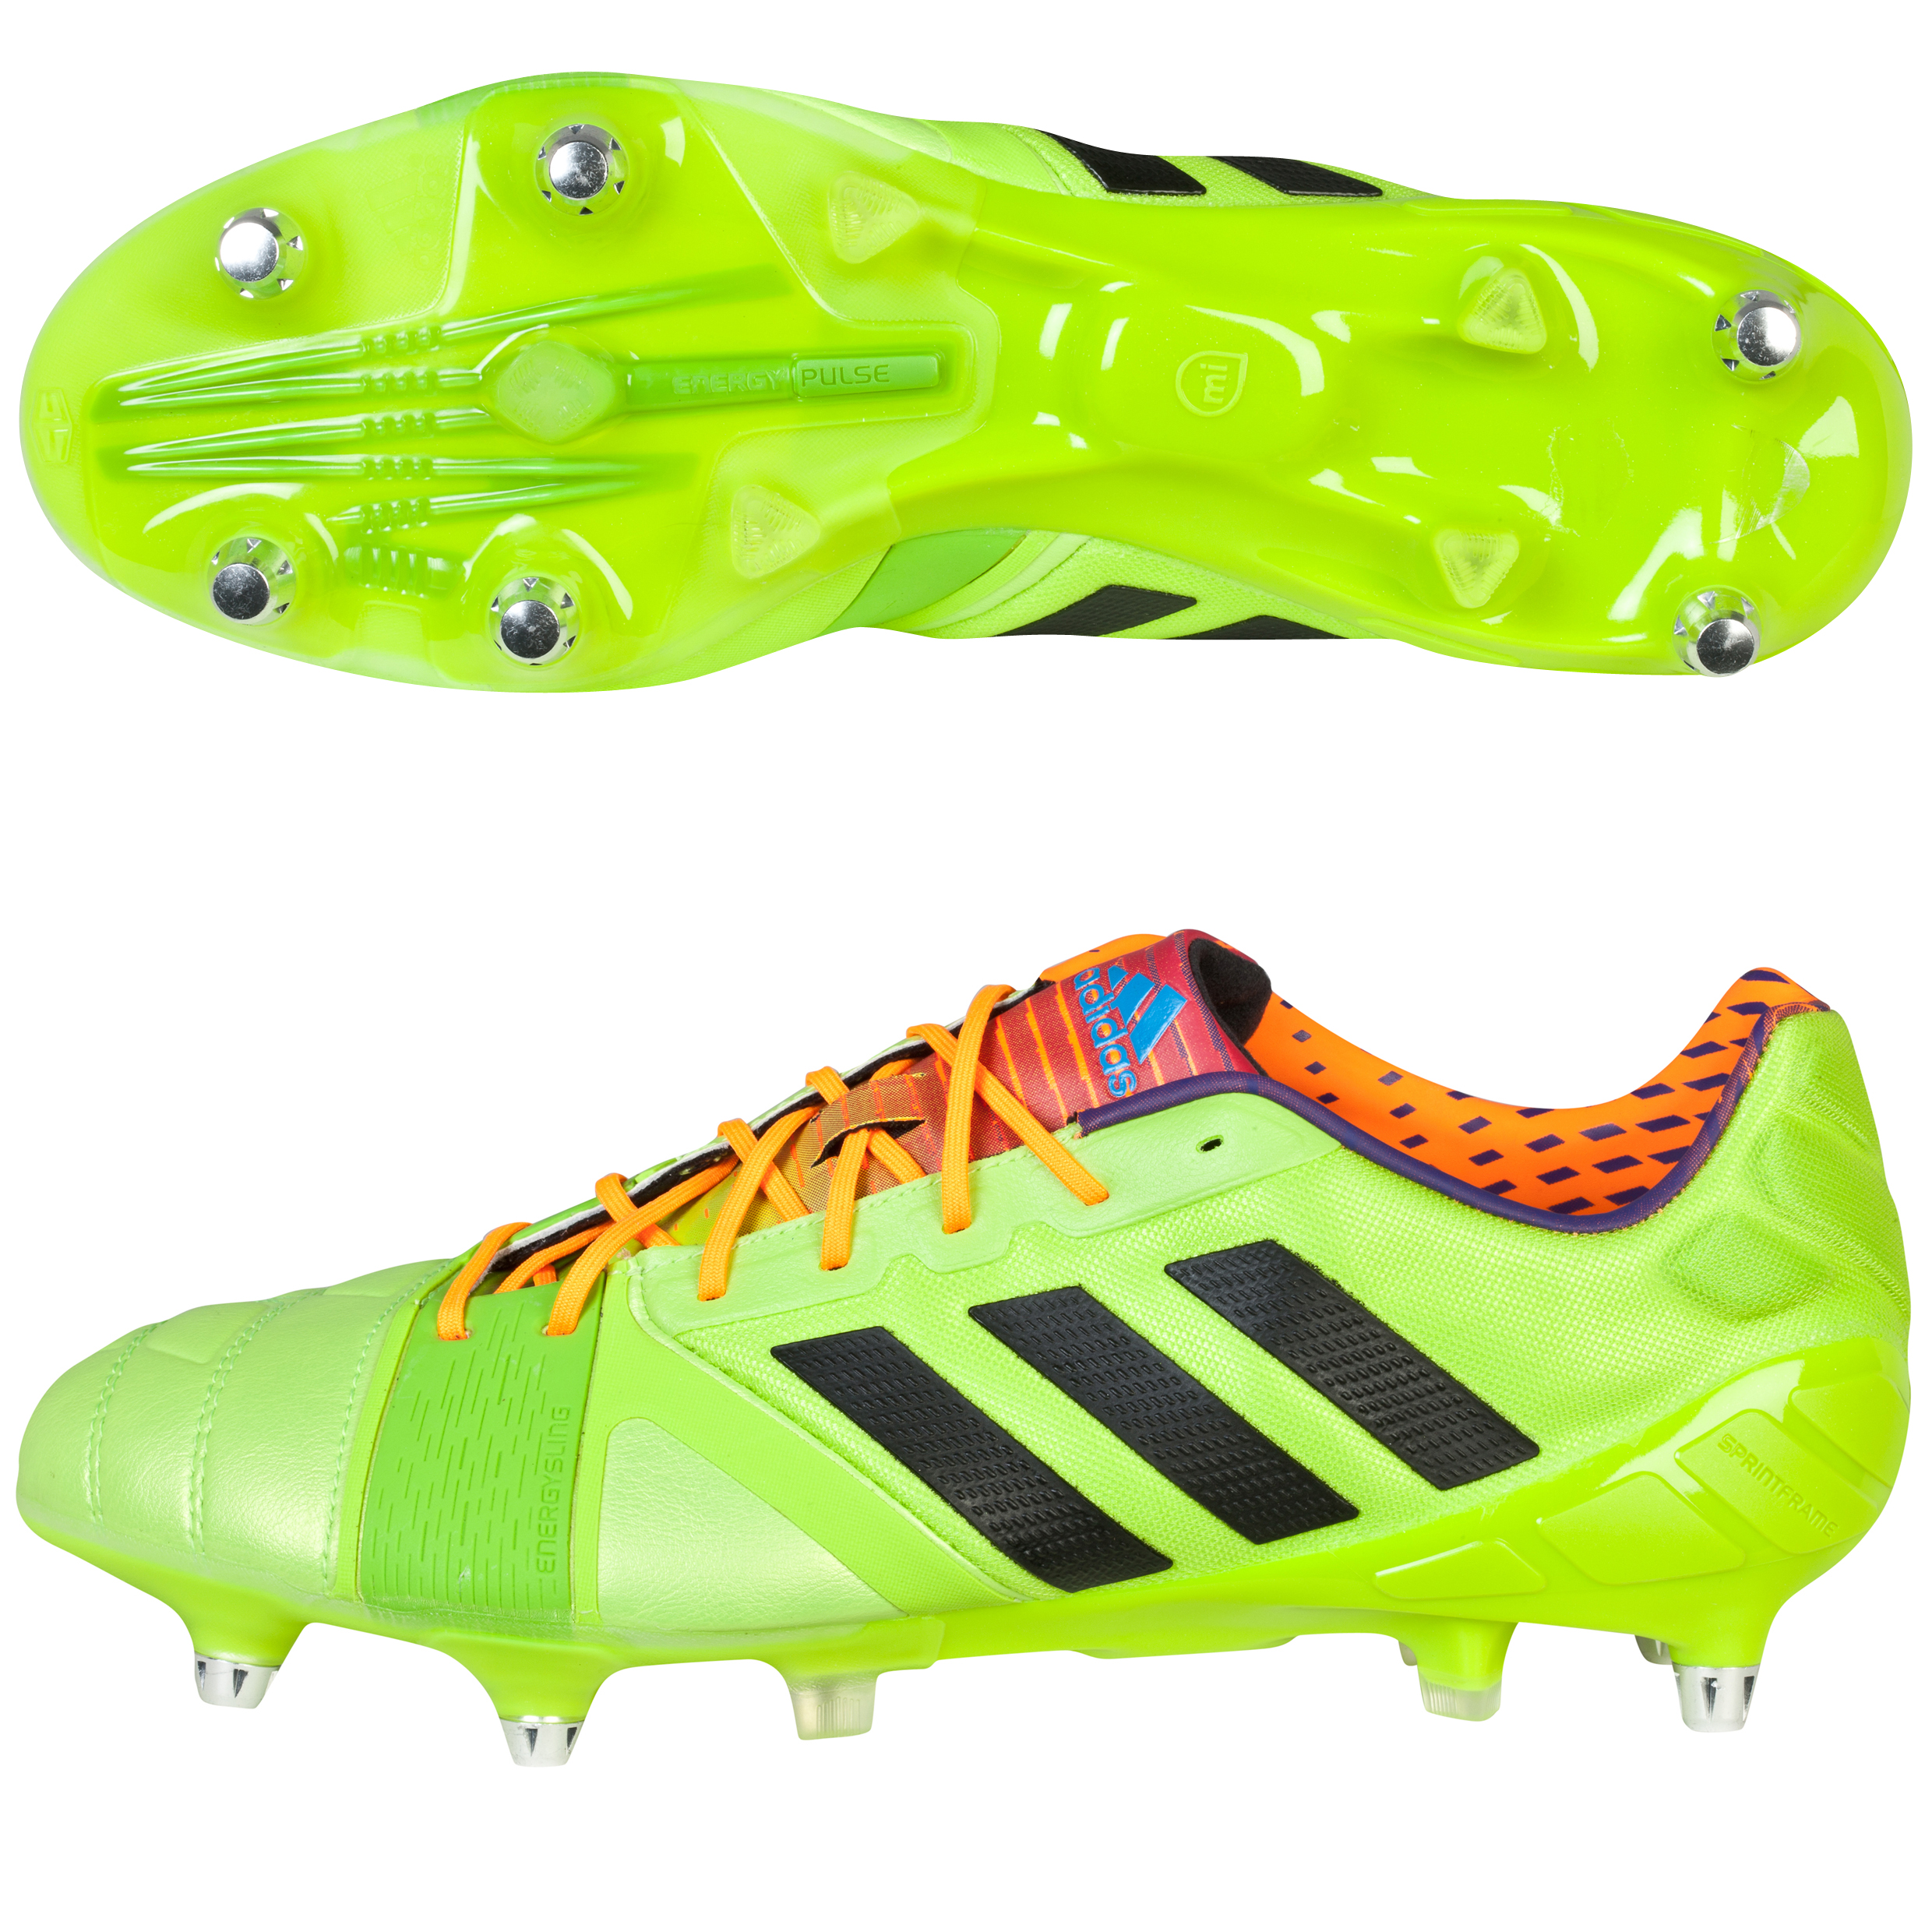 Adidas Nitrocharge 1.0 XTRX Soft Ground Football Boots Green